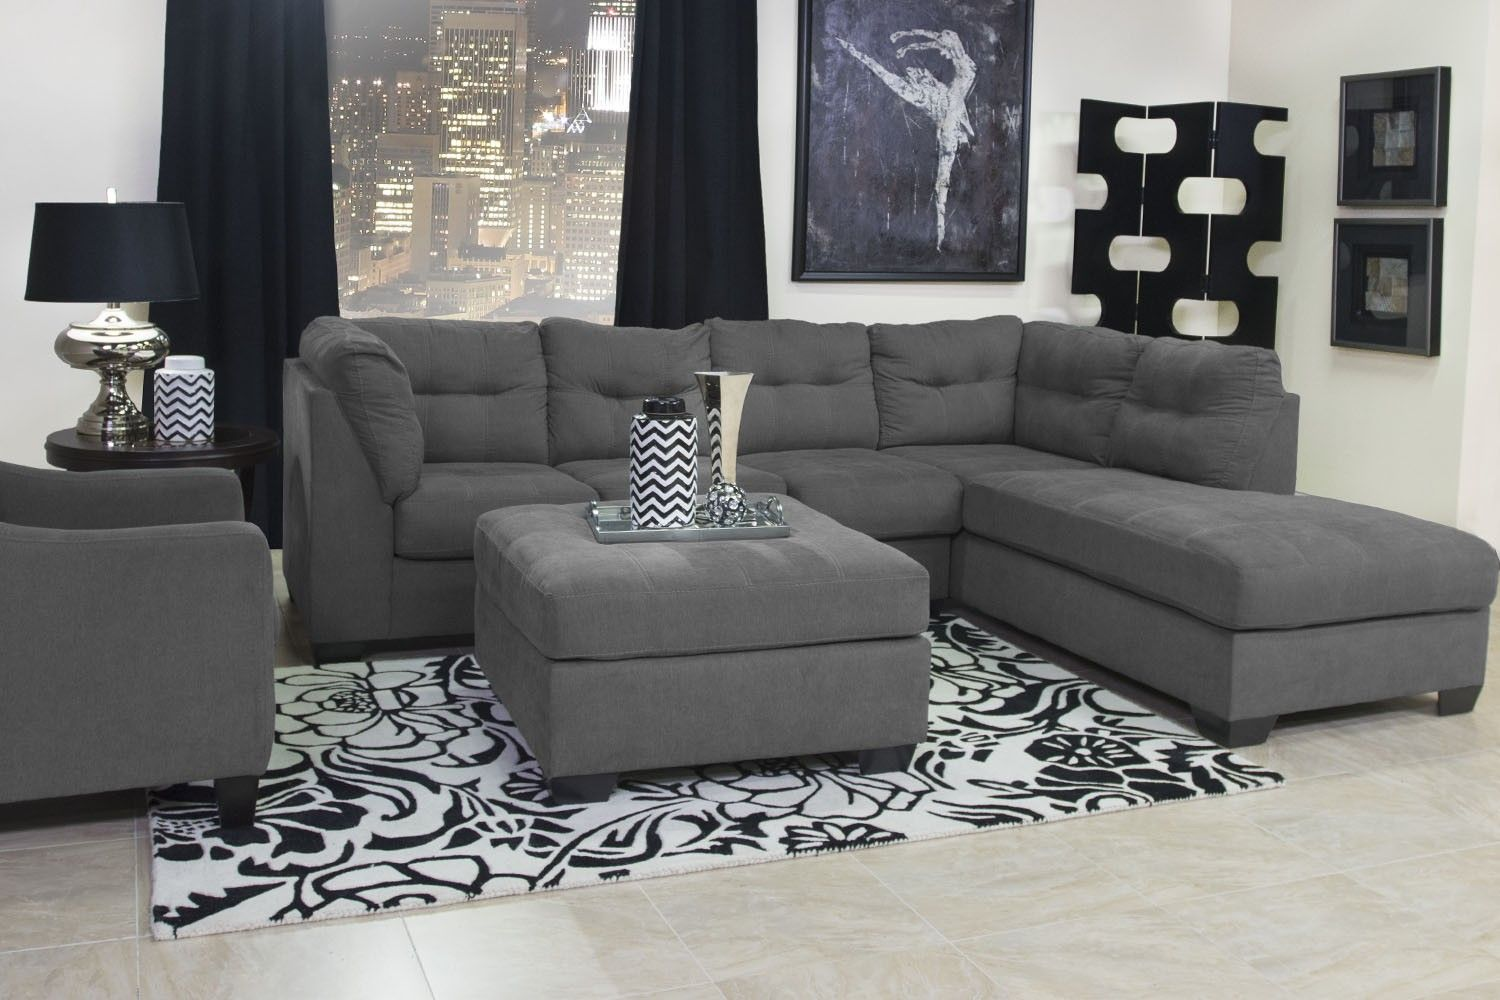 Sectional Sofas For Less Sectional Sofas For Less Thesofa